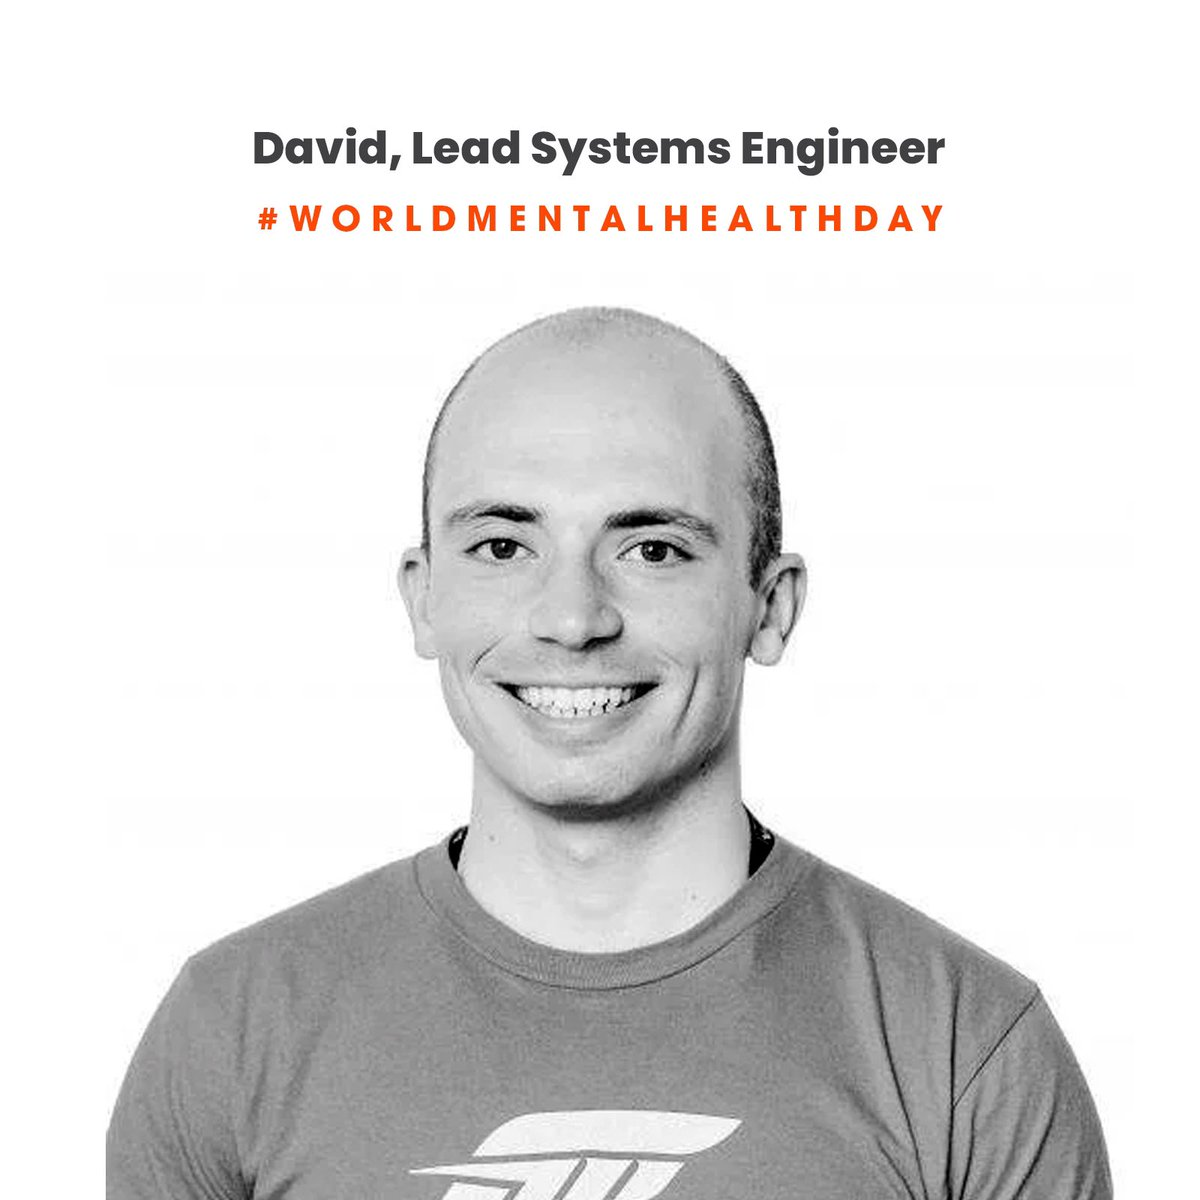 For the third of our #worldmentalhealthday chats with the Playground Games team we have David. Remember to take a moment to reflect and ask yourself, as well as others, how are we doing. https://t.co/ErJS7dZqbg